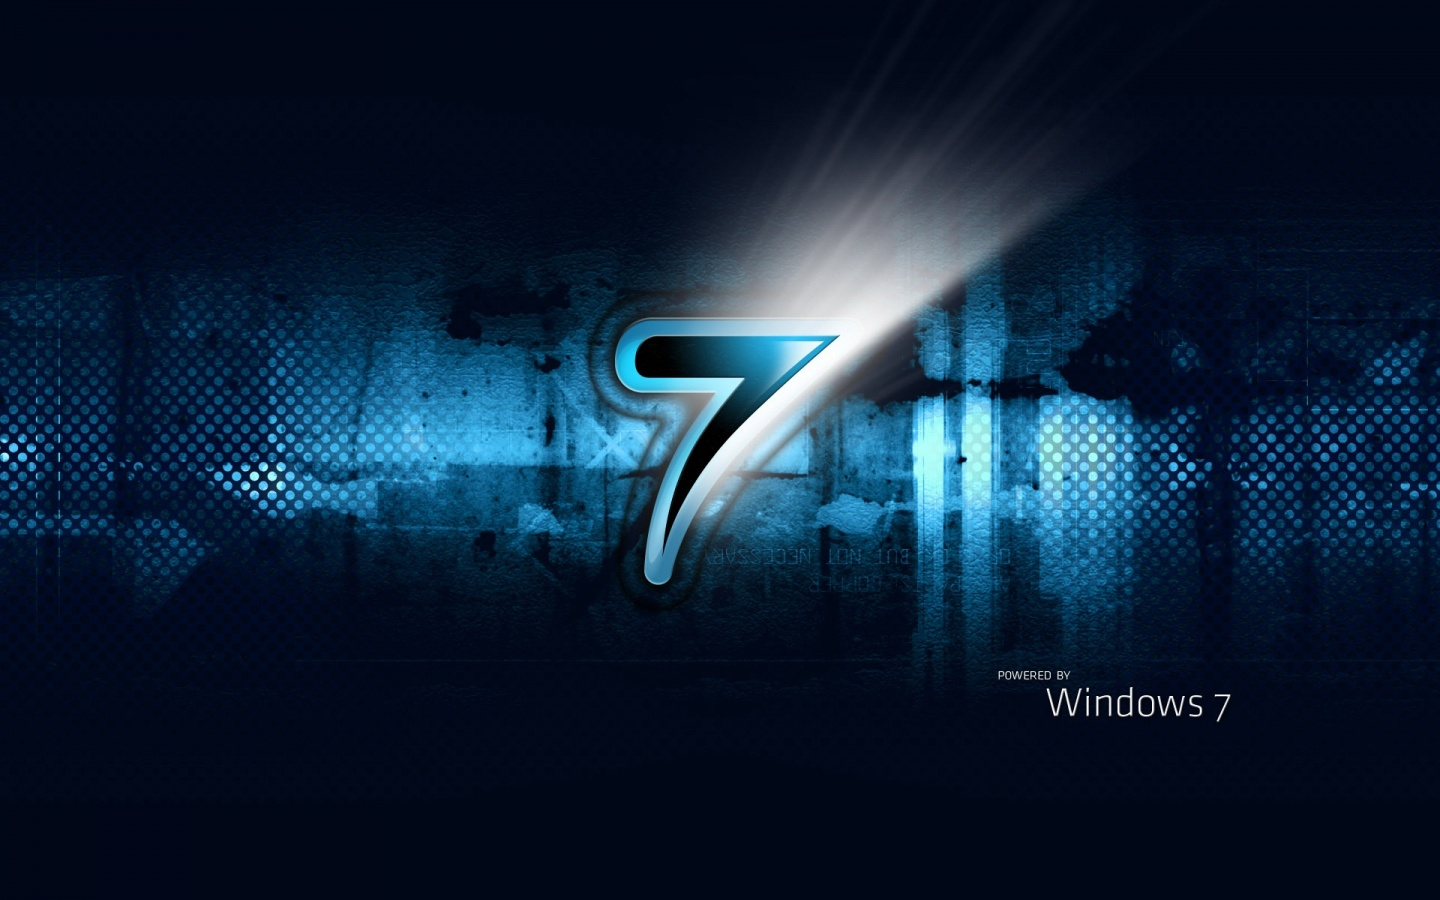 Cool Windows 7 Wallpapers HD